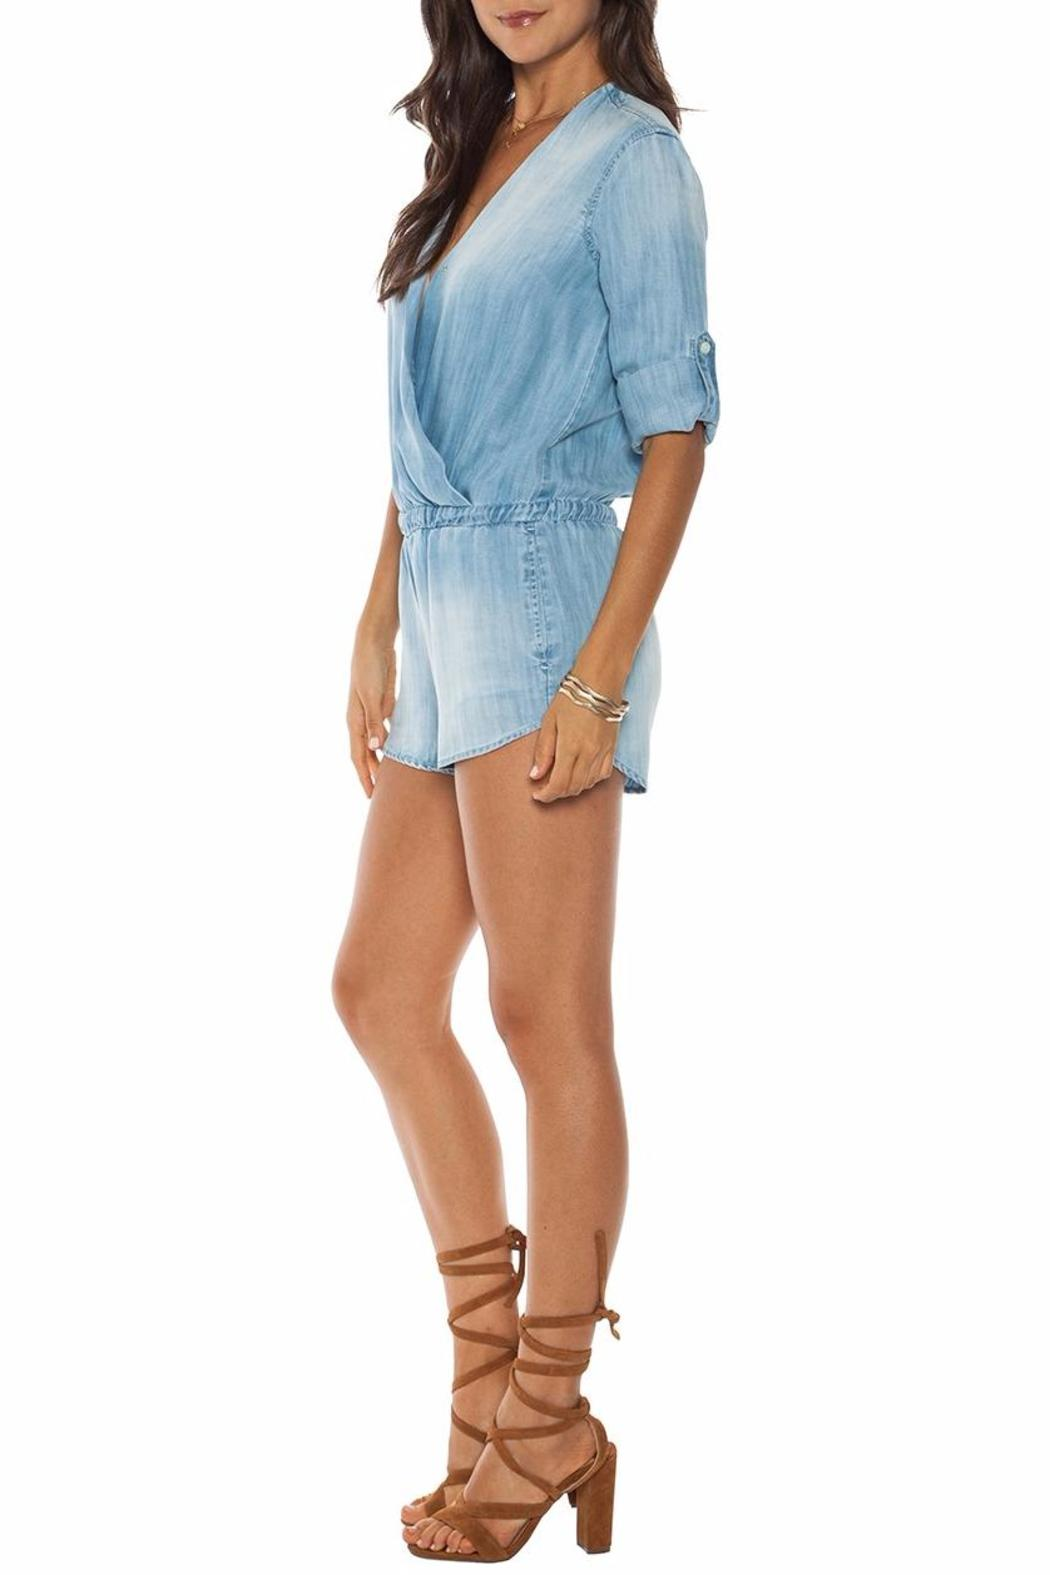 376f66c20ef Bella Dahl Cross Front Romper from Wicker Park by Mulberry   Me ...